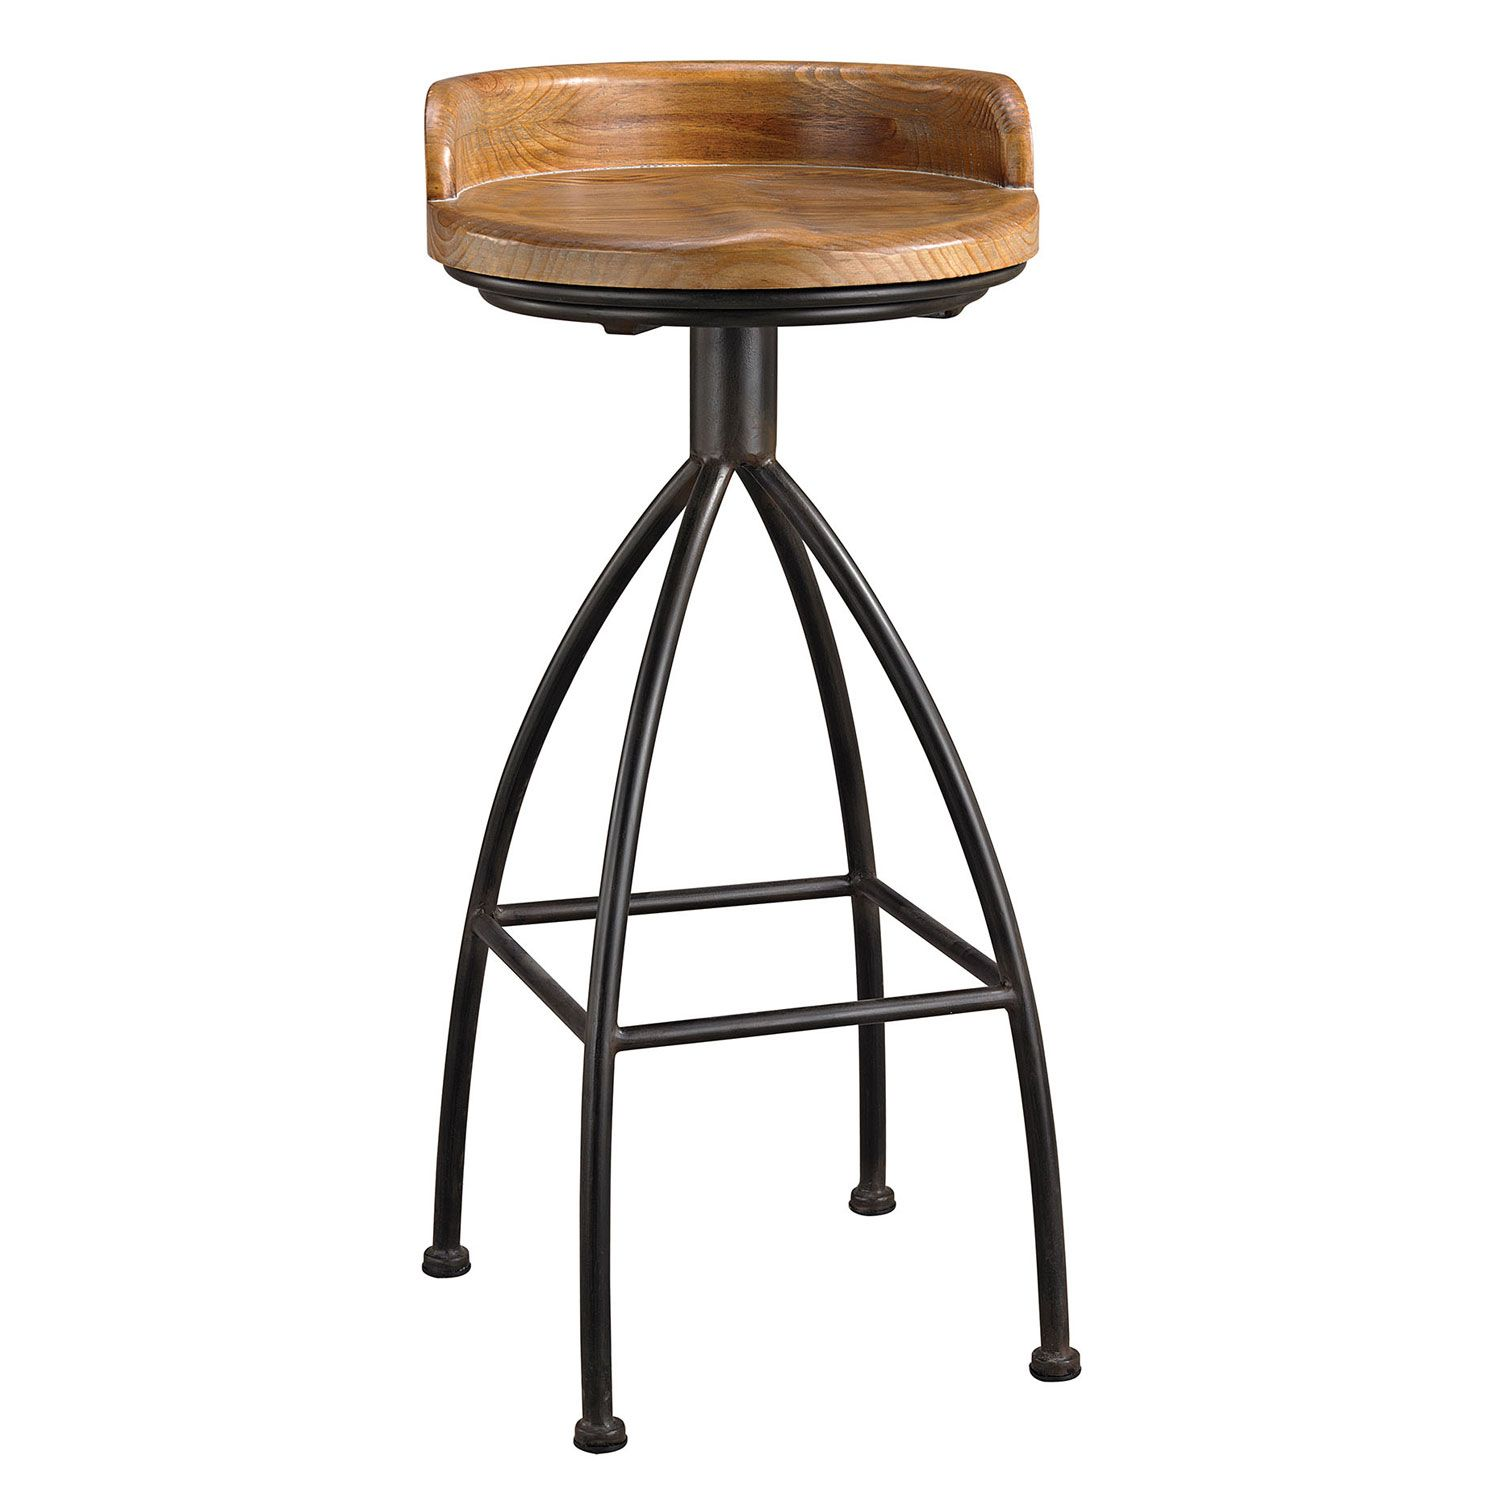 Brilliant Natural And Industrial Styles Converge To Create The Soho Ibusinesslaw Wood Chair Design Ideas Ibusinesslaworg